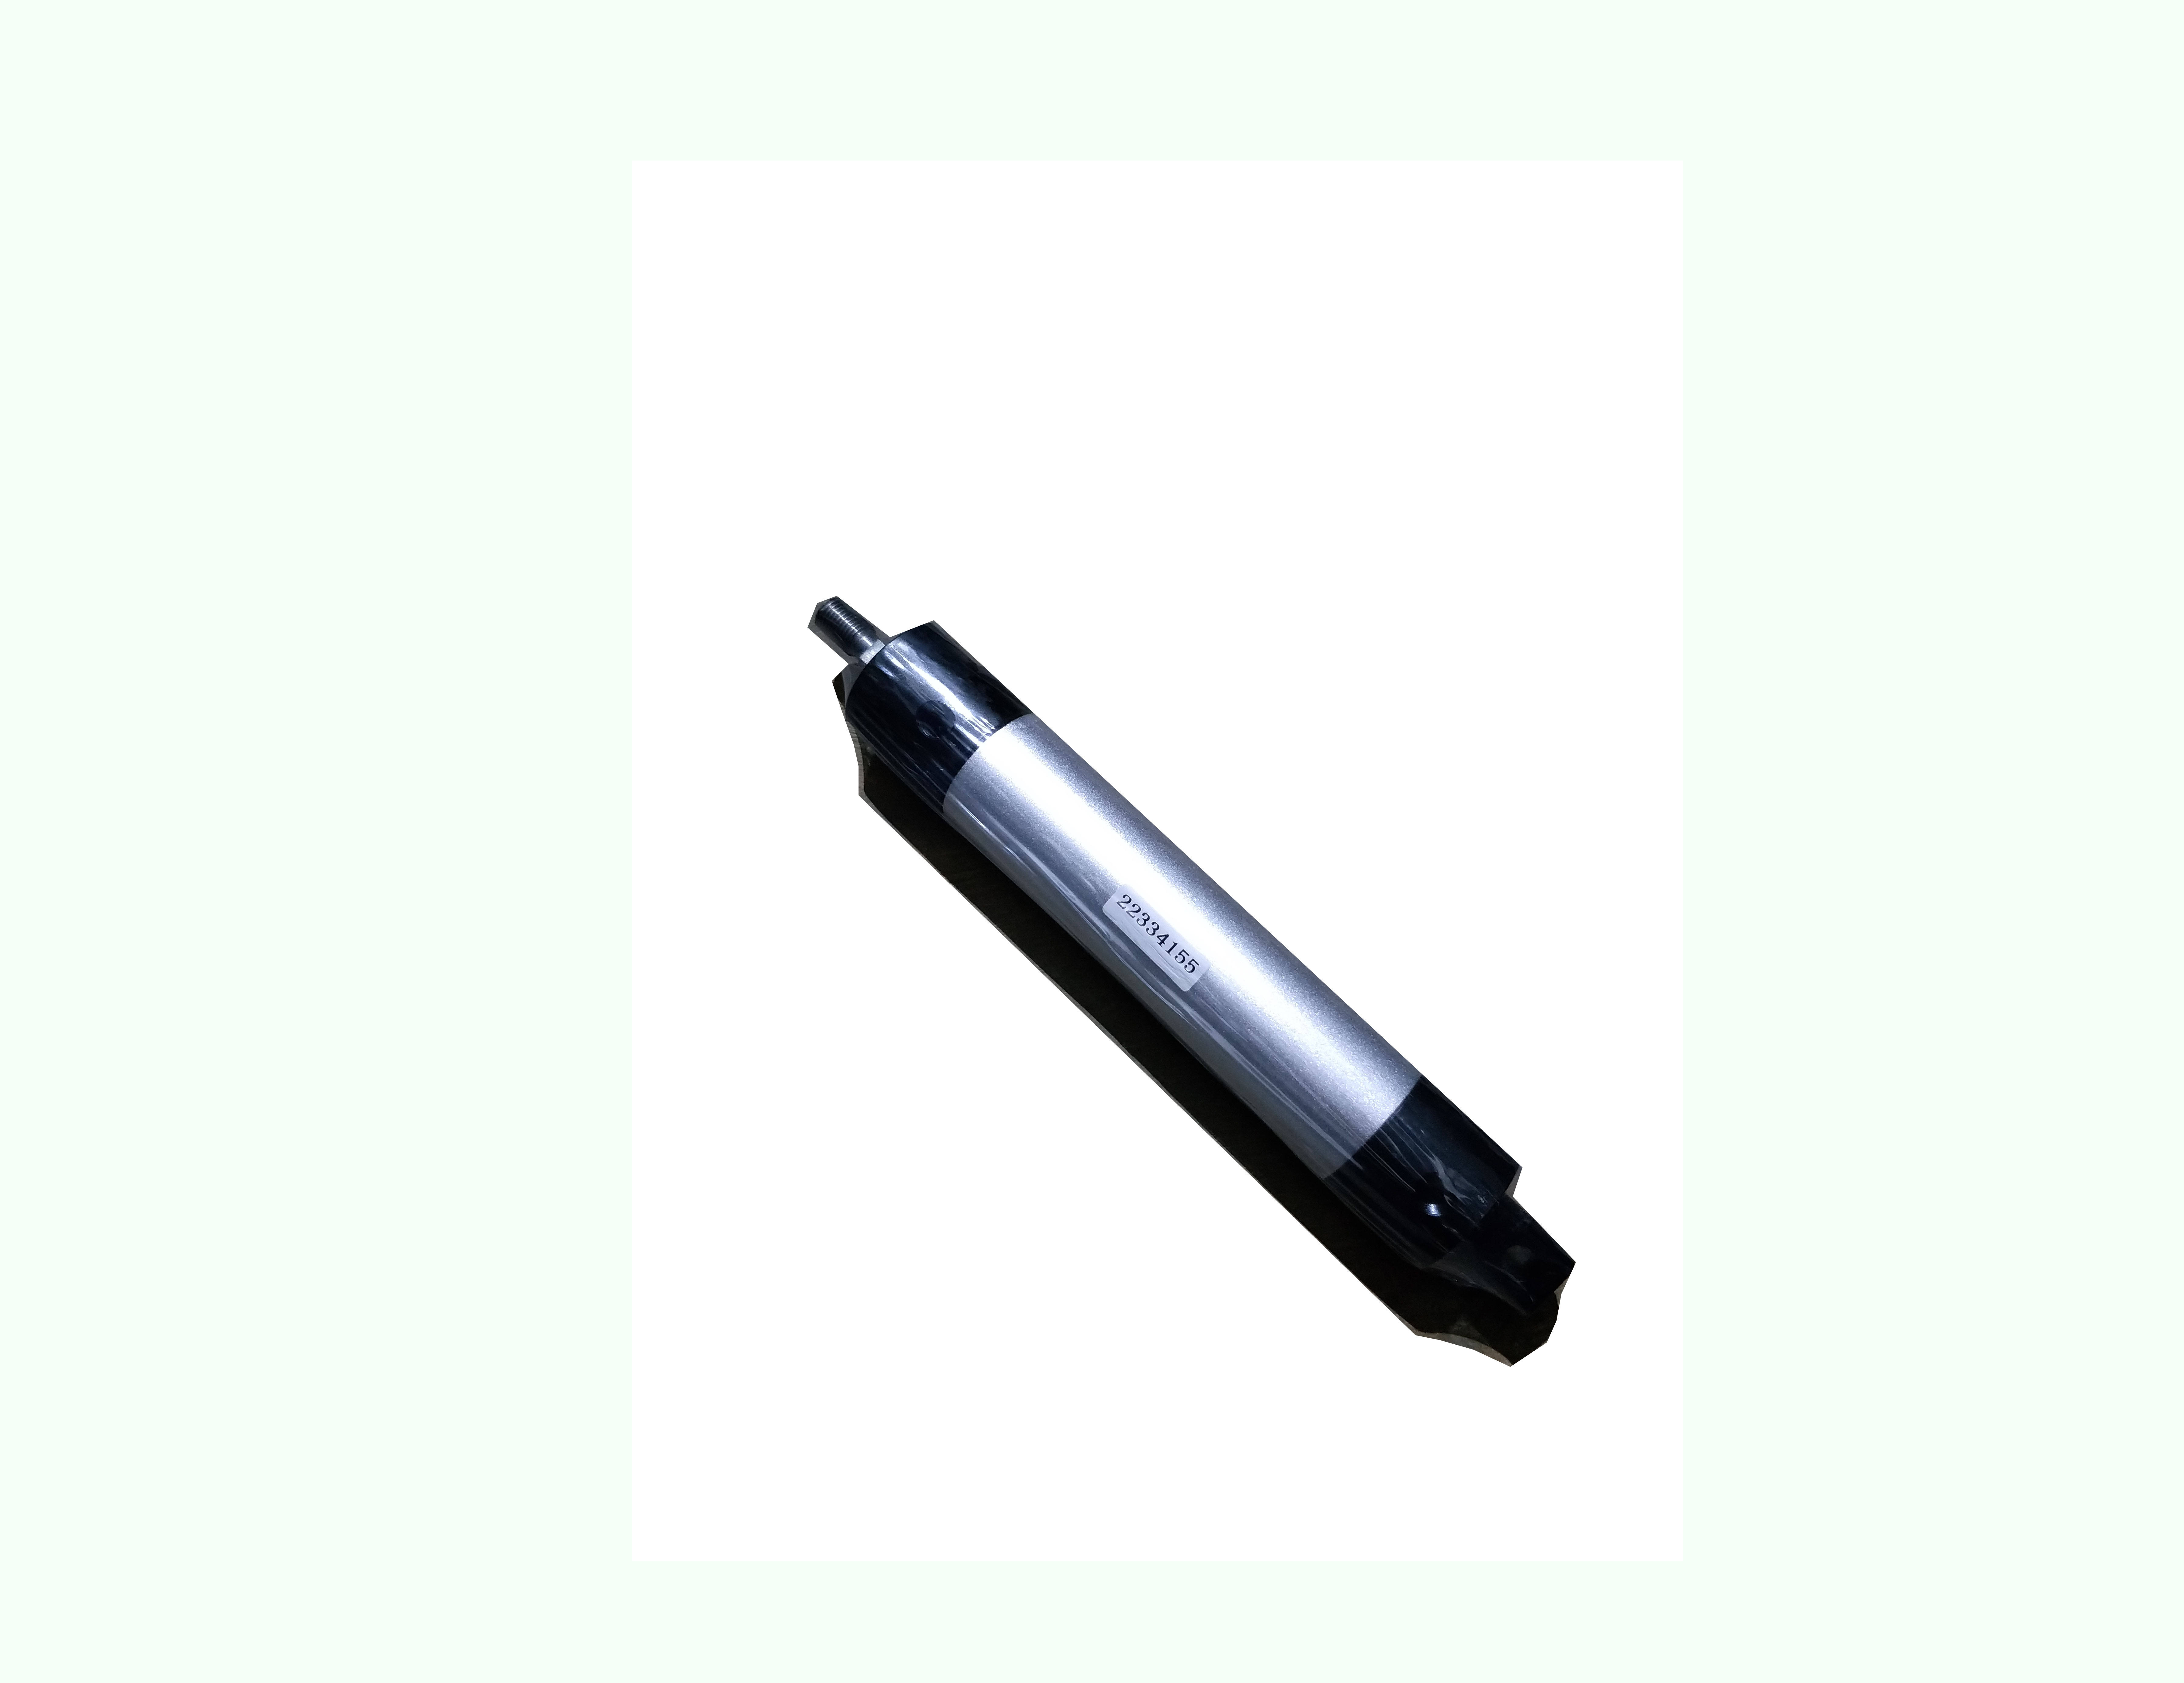 Cylinder Gas 42495911 Spare Parts for Ingersoll Rand Air Compressor 39589056 22334155 54600366 39589056